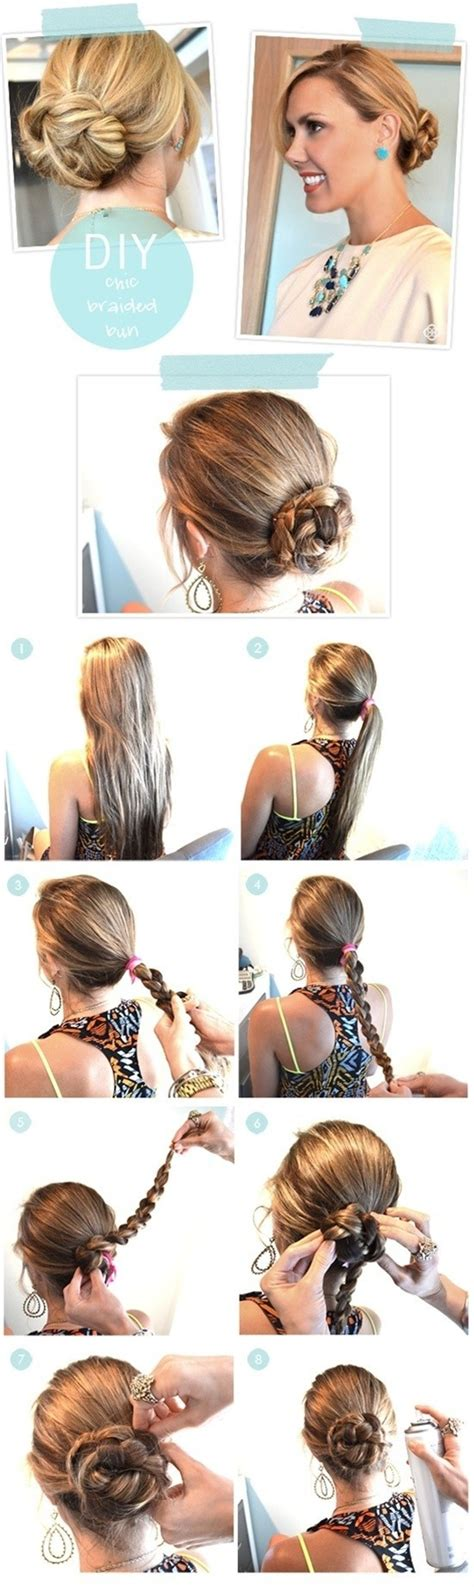 do it yourself haircut for short hair wordpresscom do it yourself hairstyles for short hair hair style and